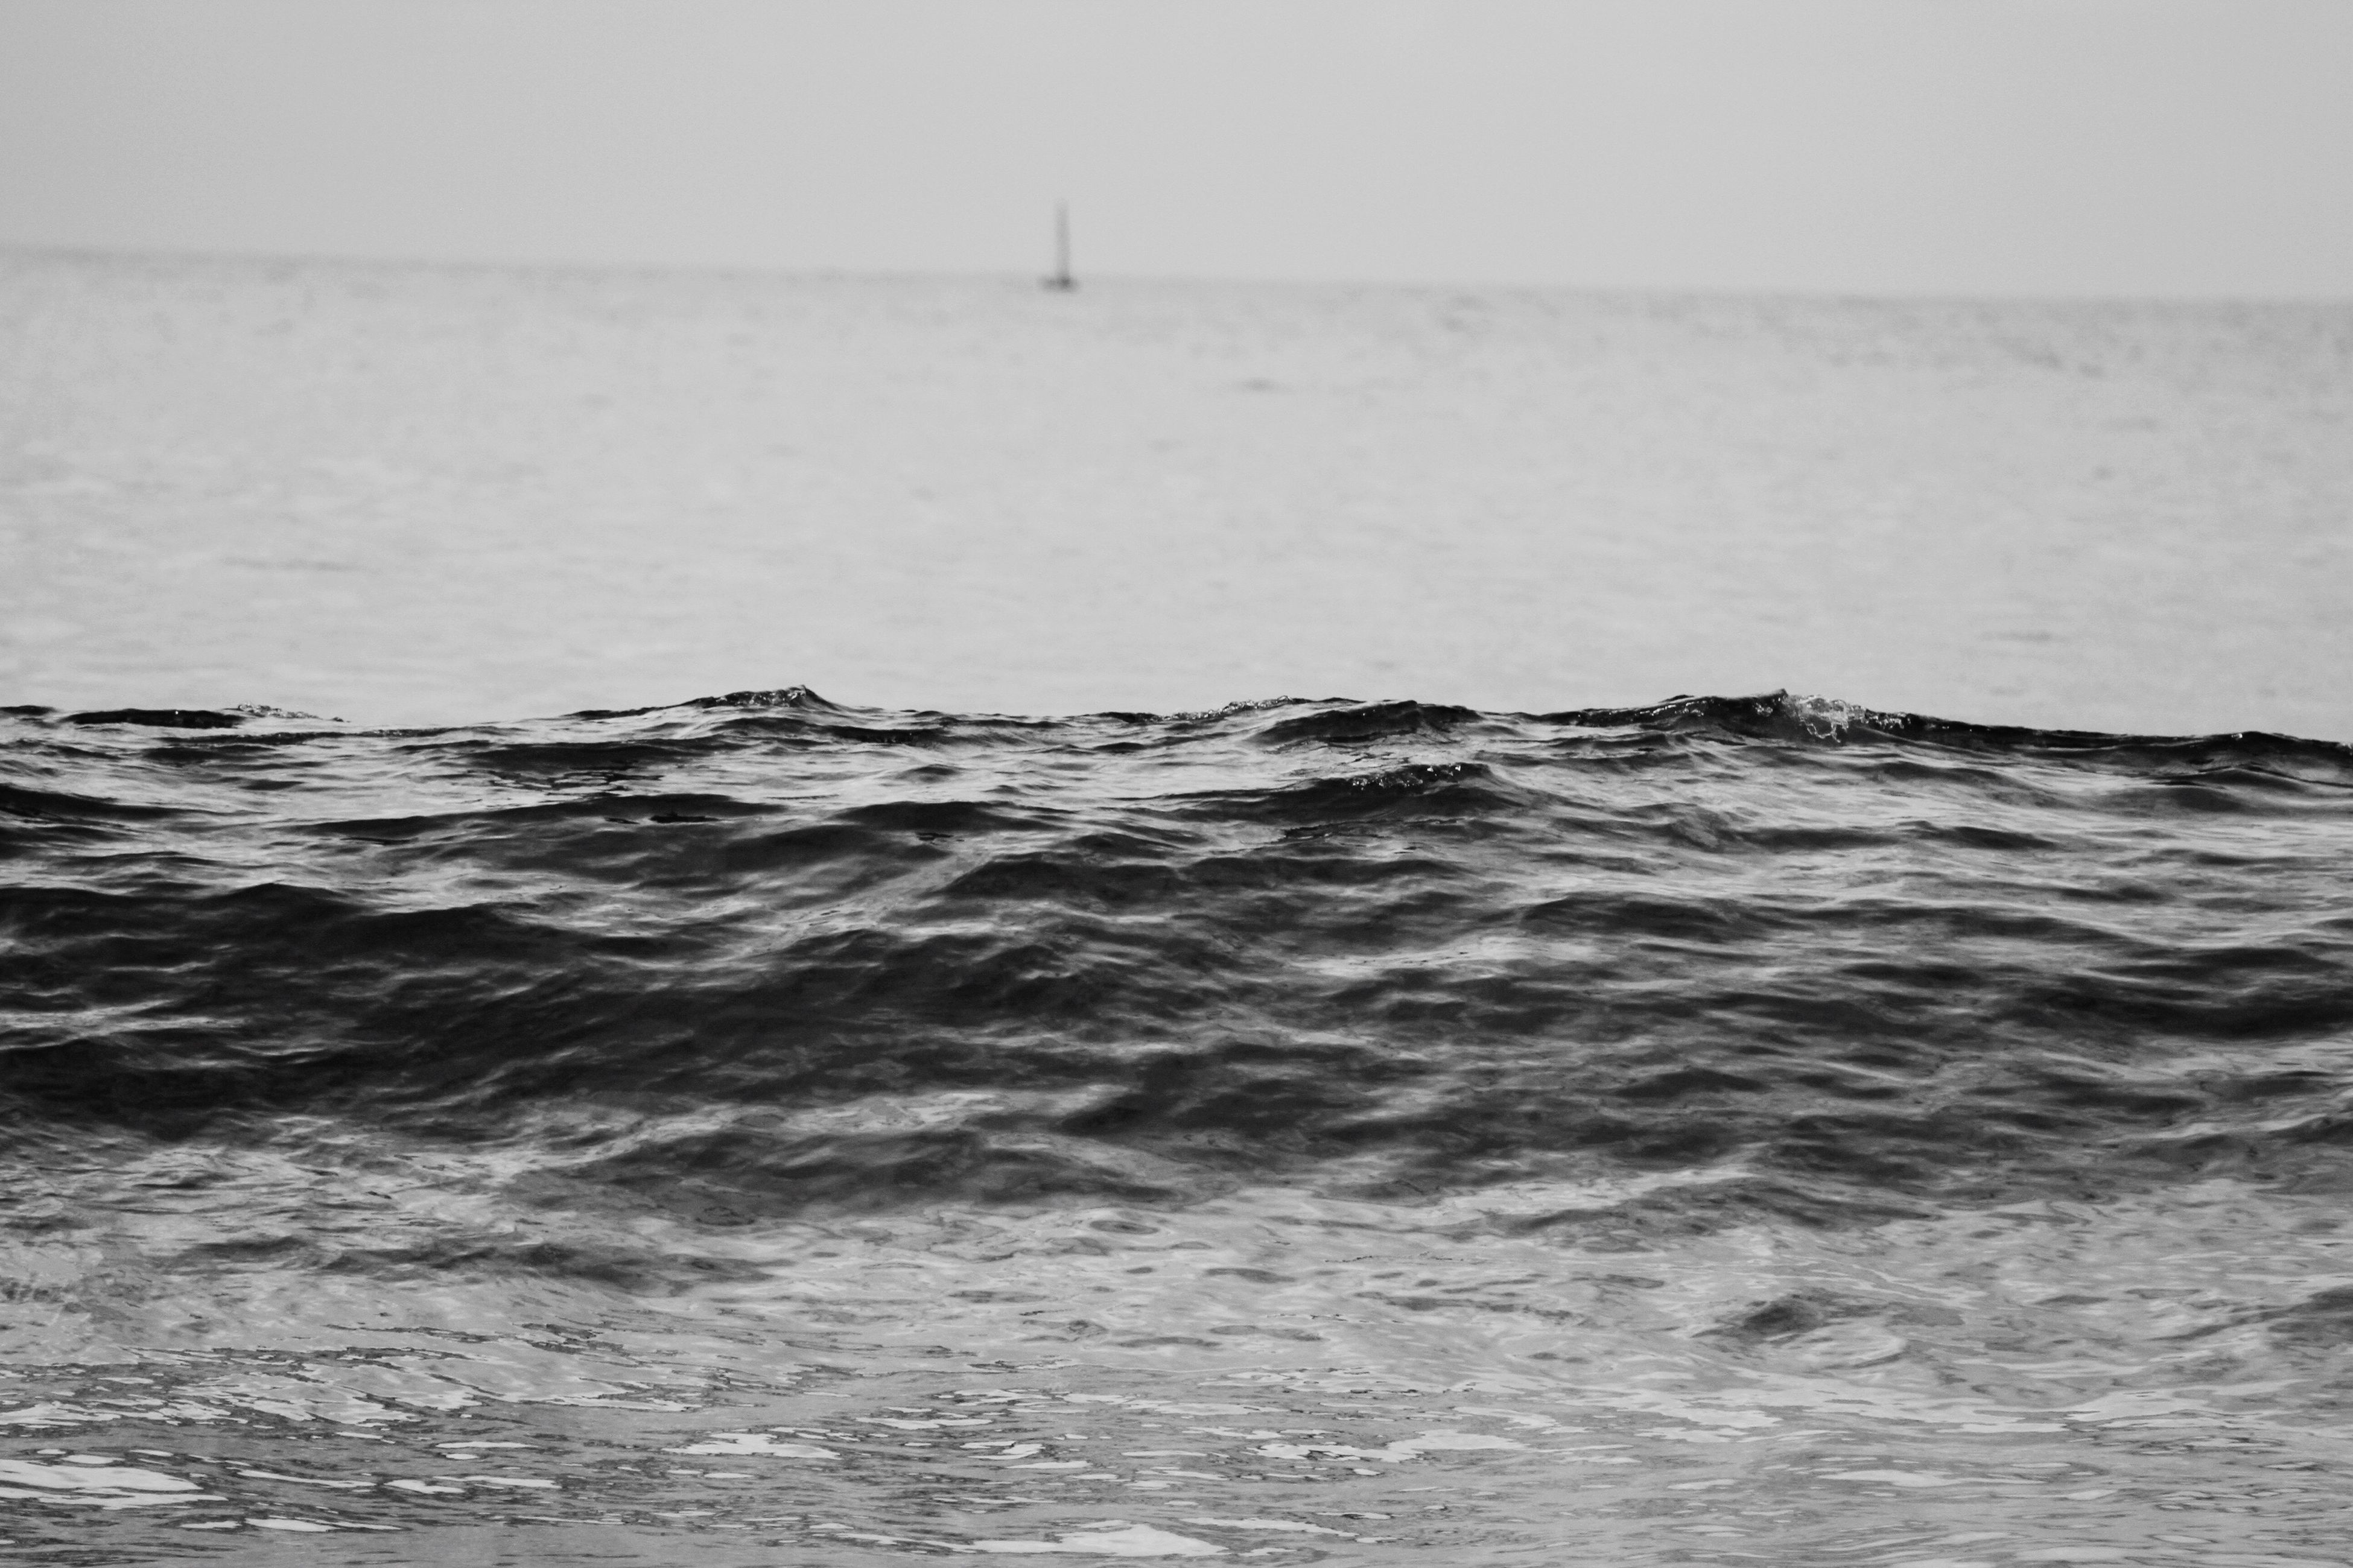 sea, water, nature, wave, outdoors, scenics, waterfront, beauty in nature, day, no people, horizon over water, tranquility, sky, beach